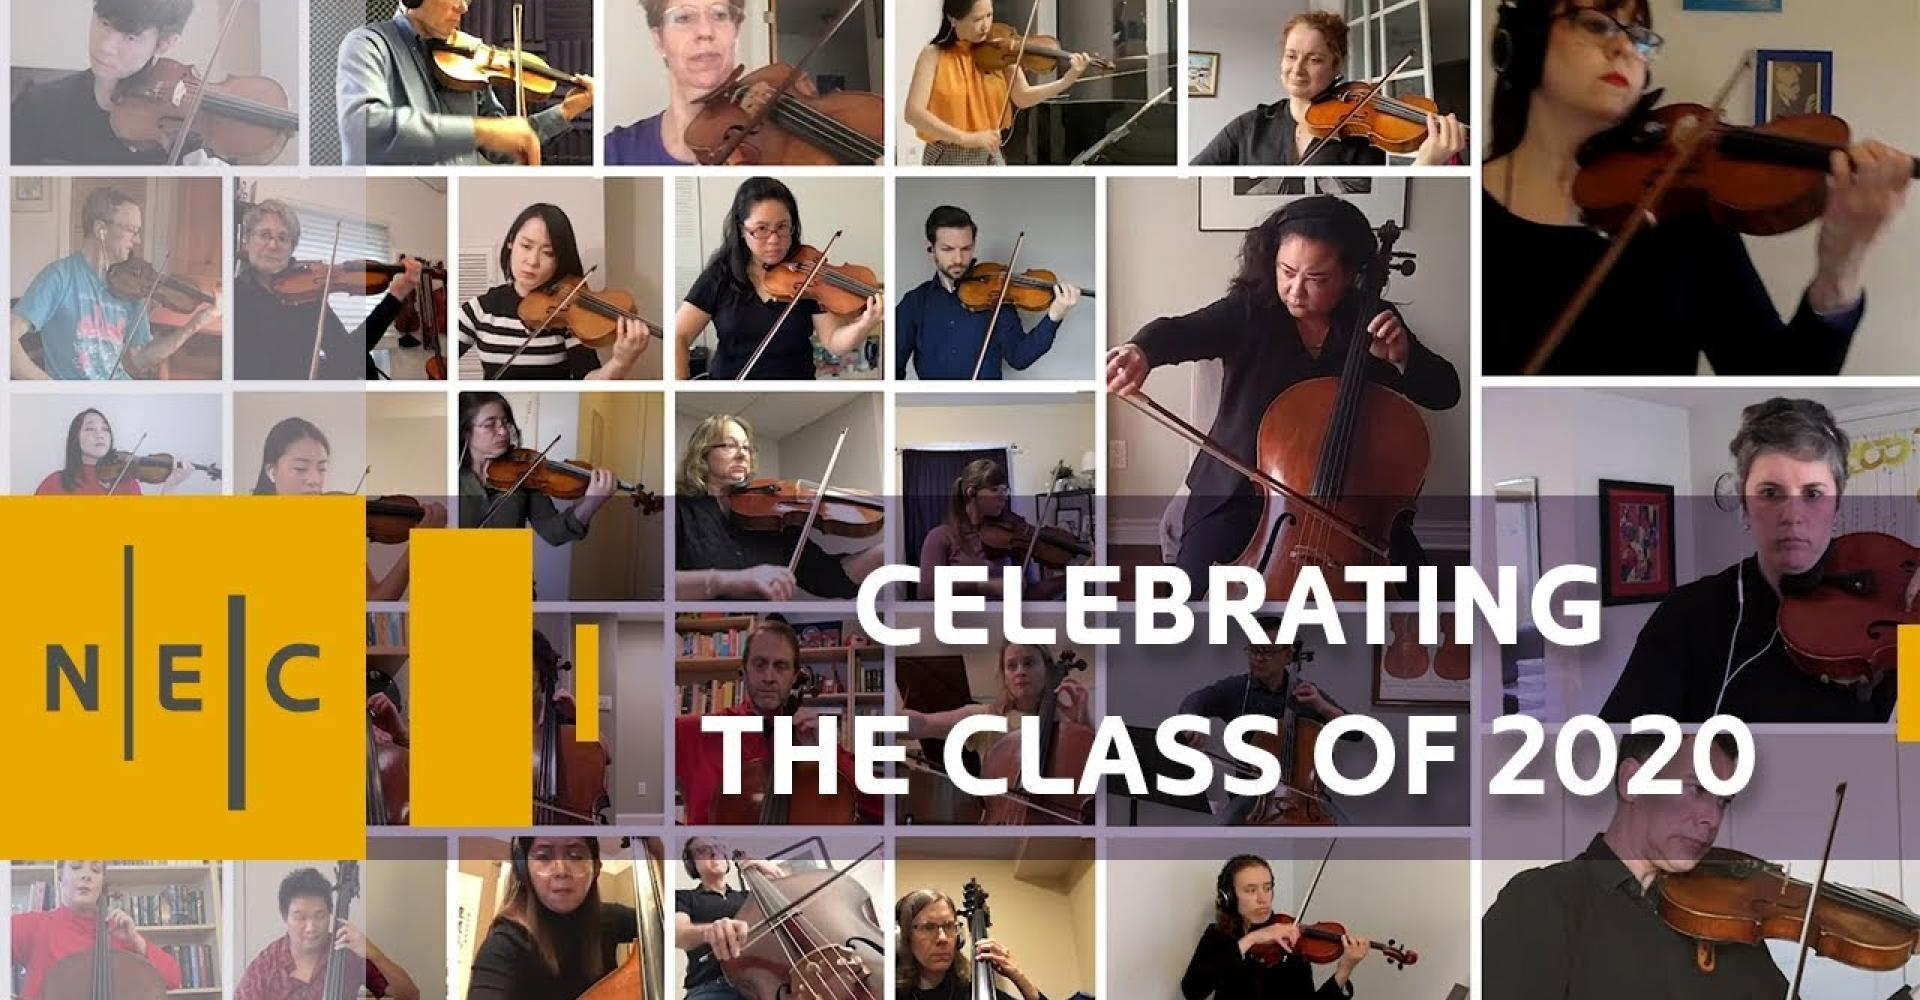 Text: Celebrating the Class of 2020, over a composite images of about 30 musicians playing music together via individual video.